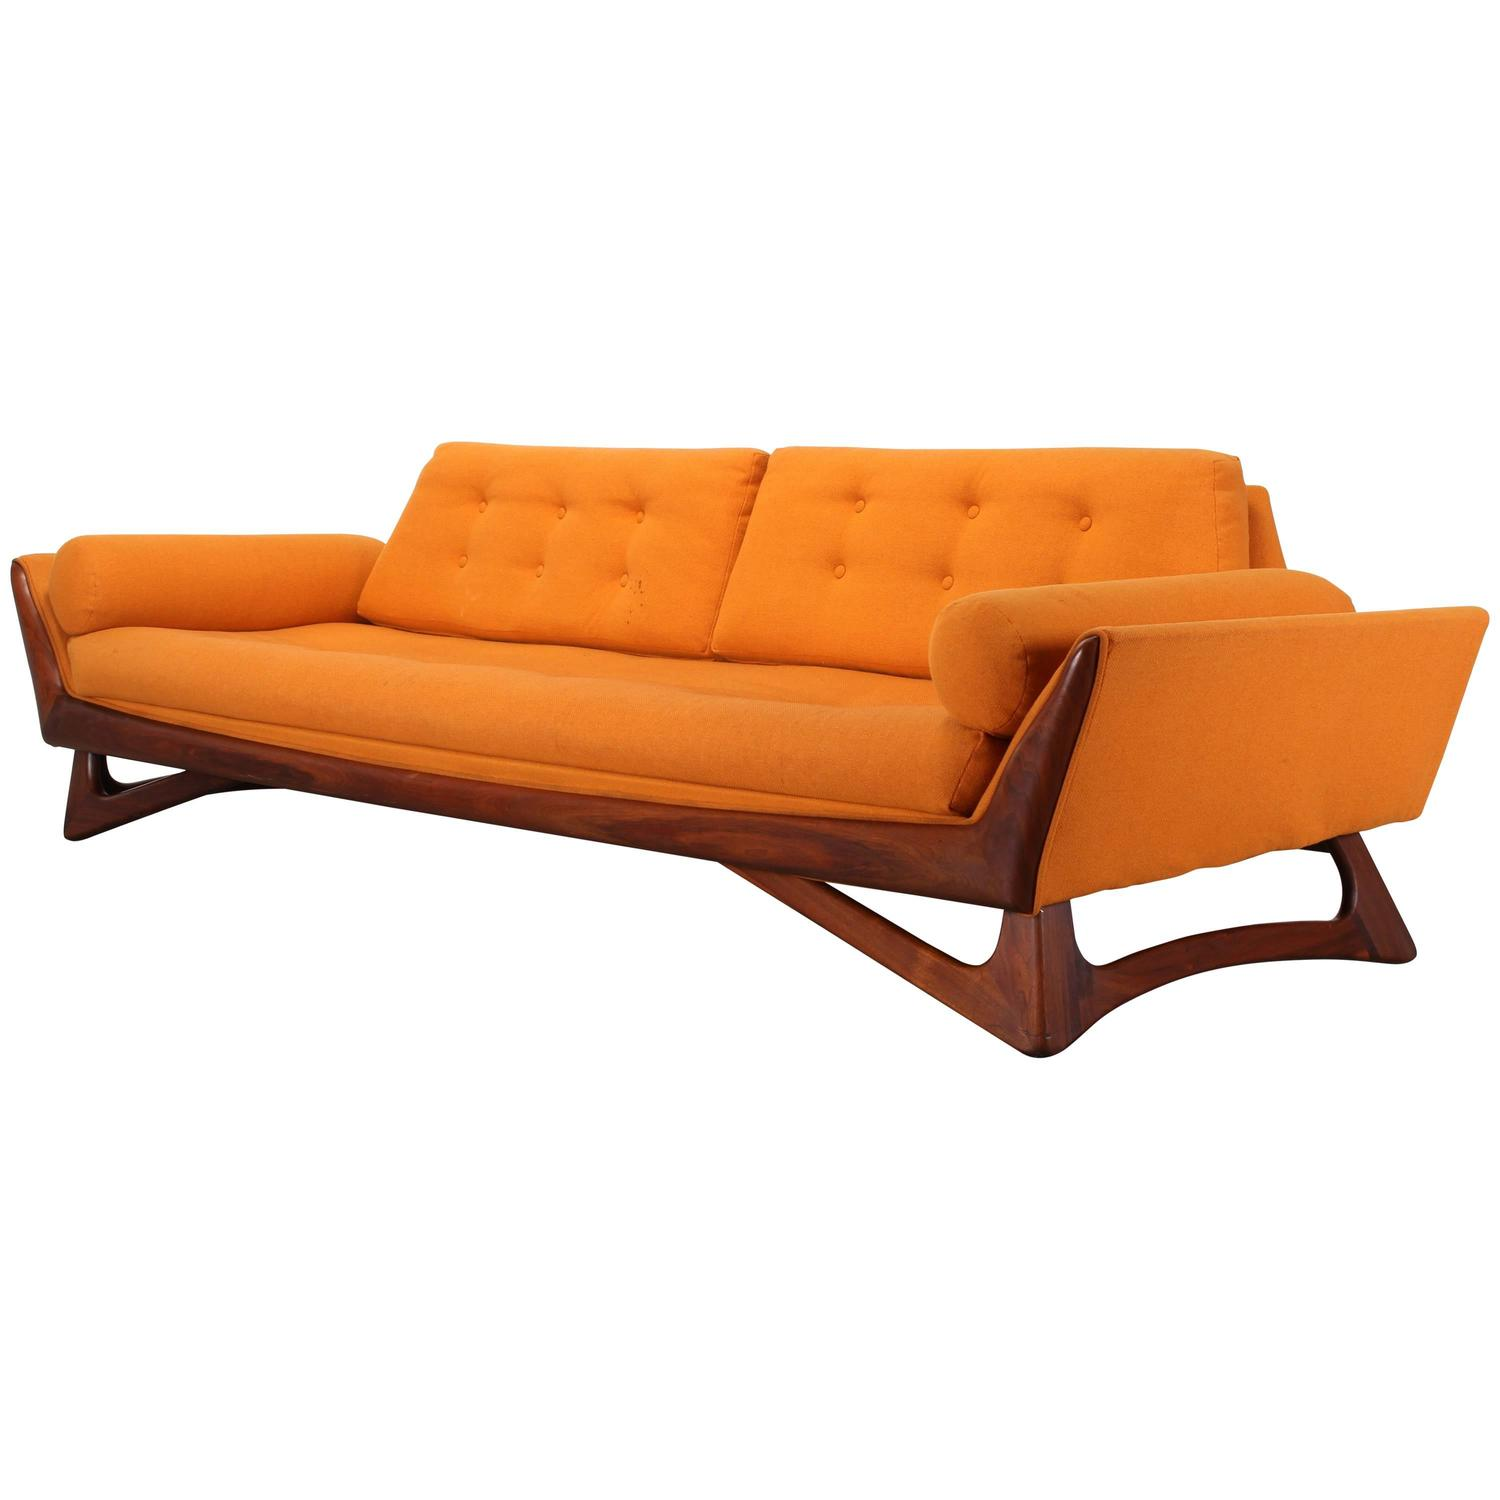 Adrian Pearsall Sofa Images